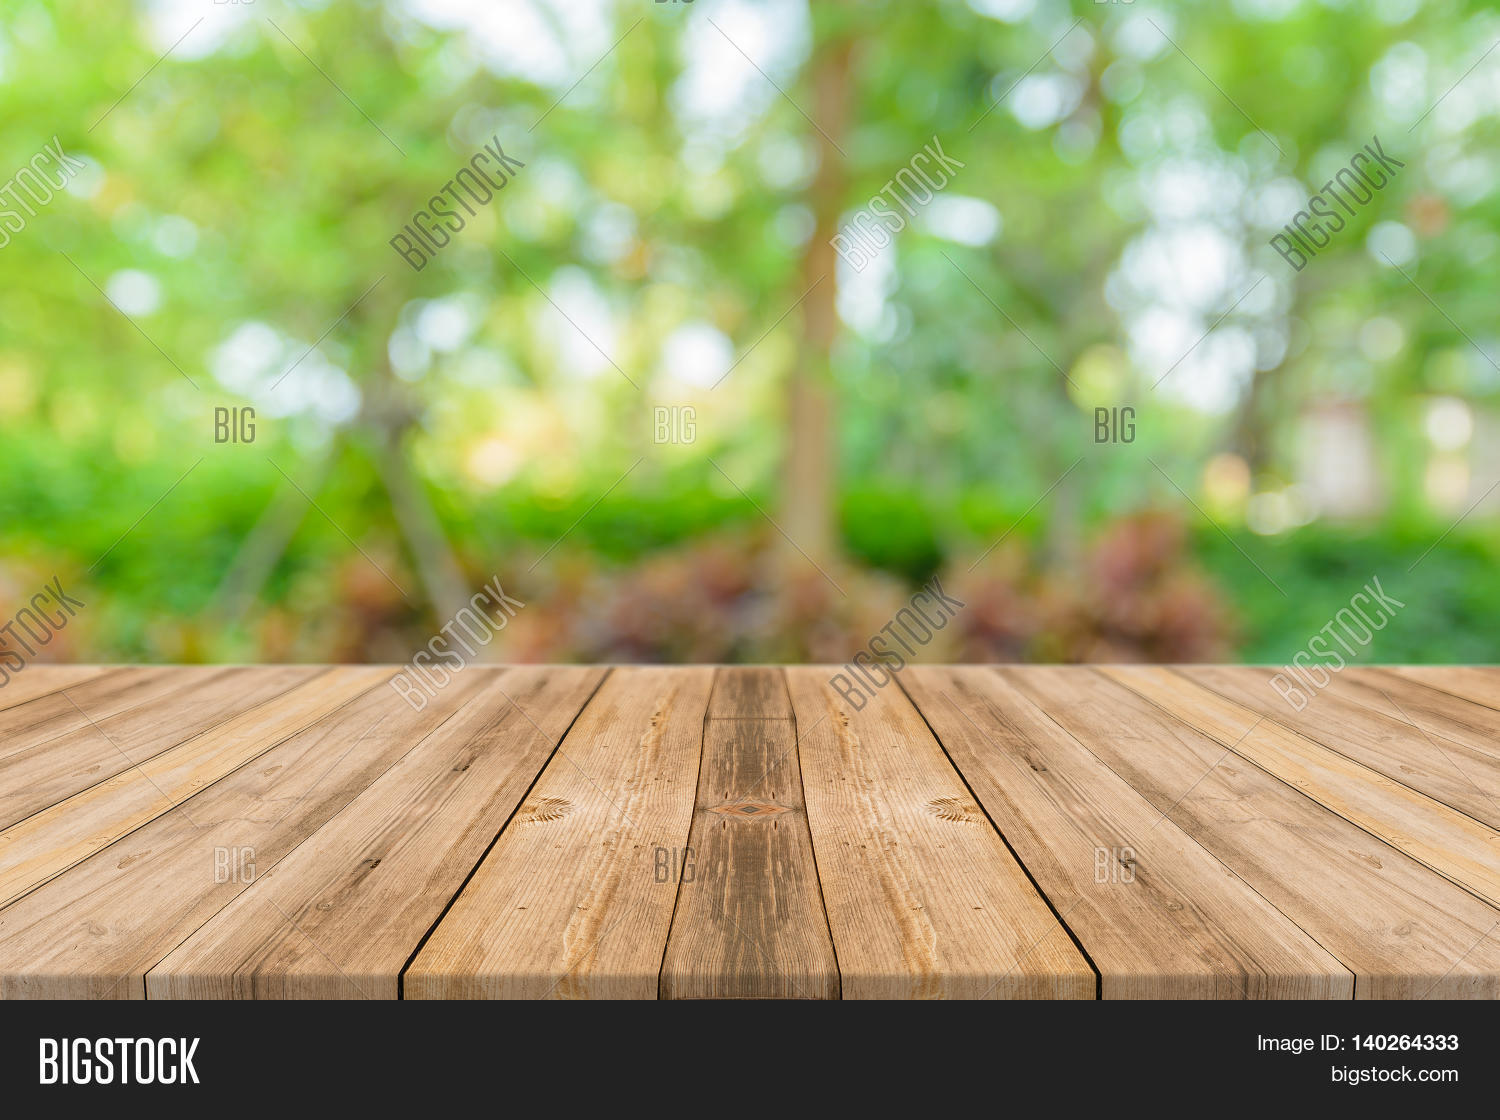 Wooden Board Empty Table Front Image & Photo | Bigstock